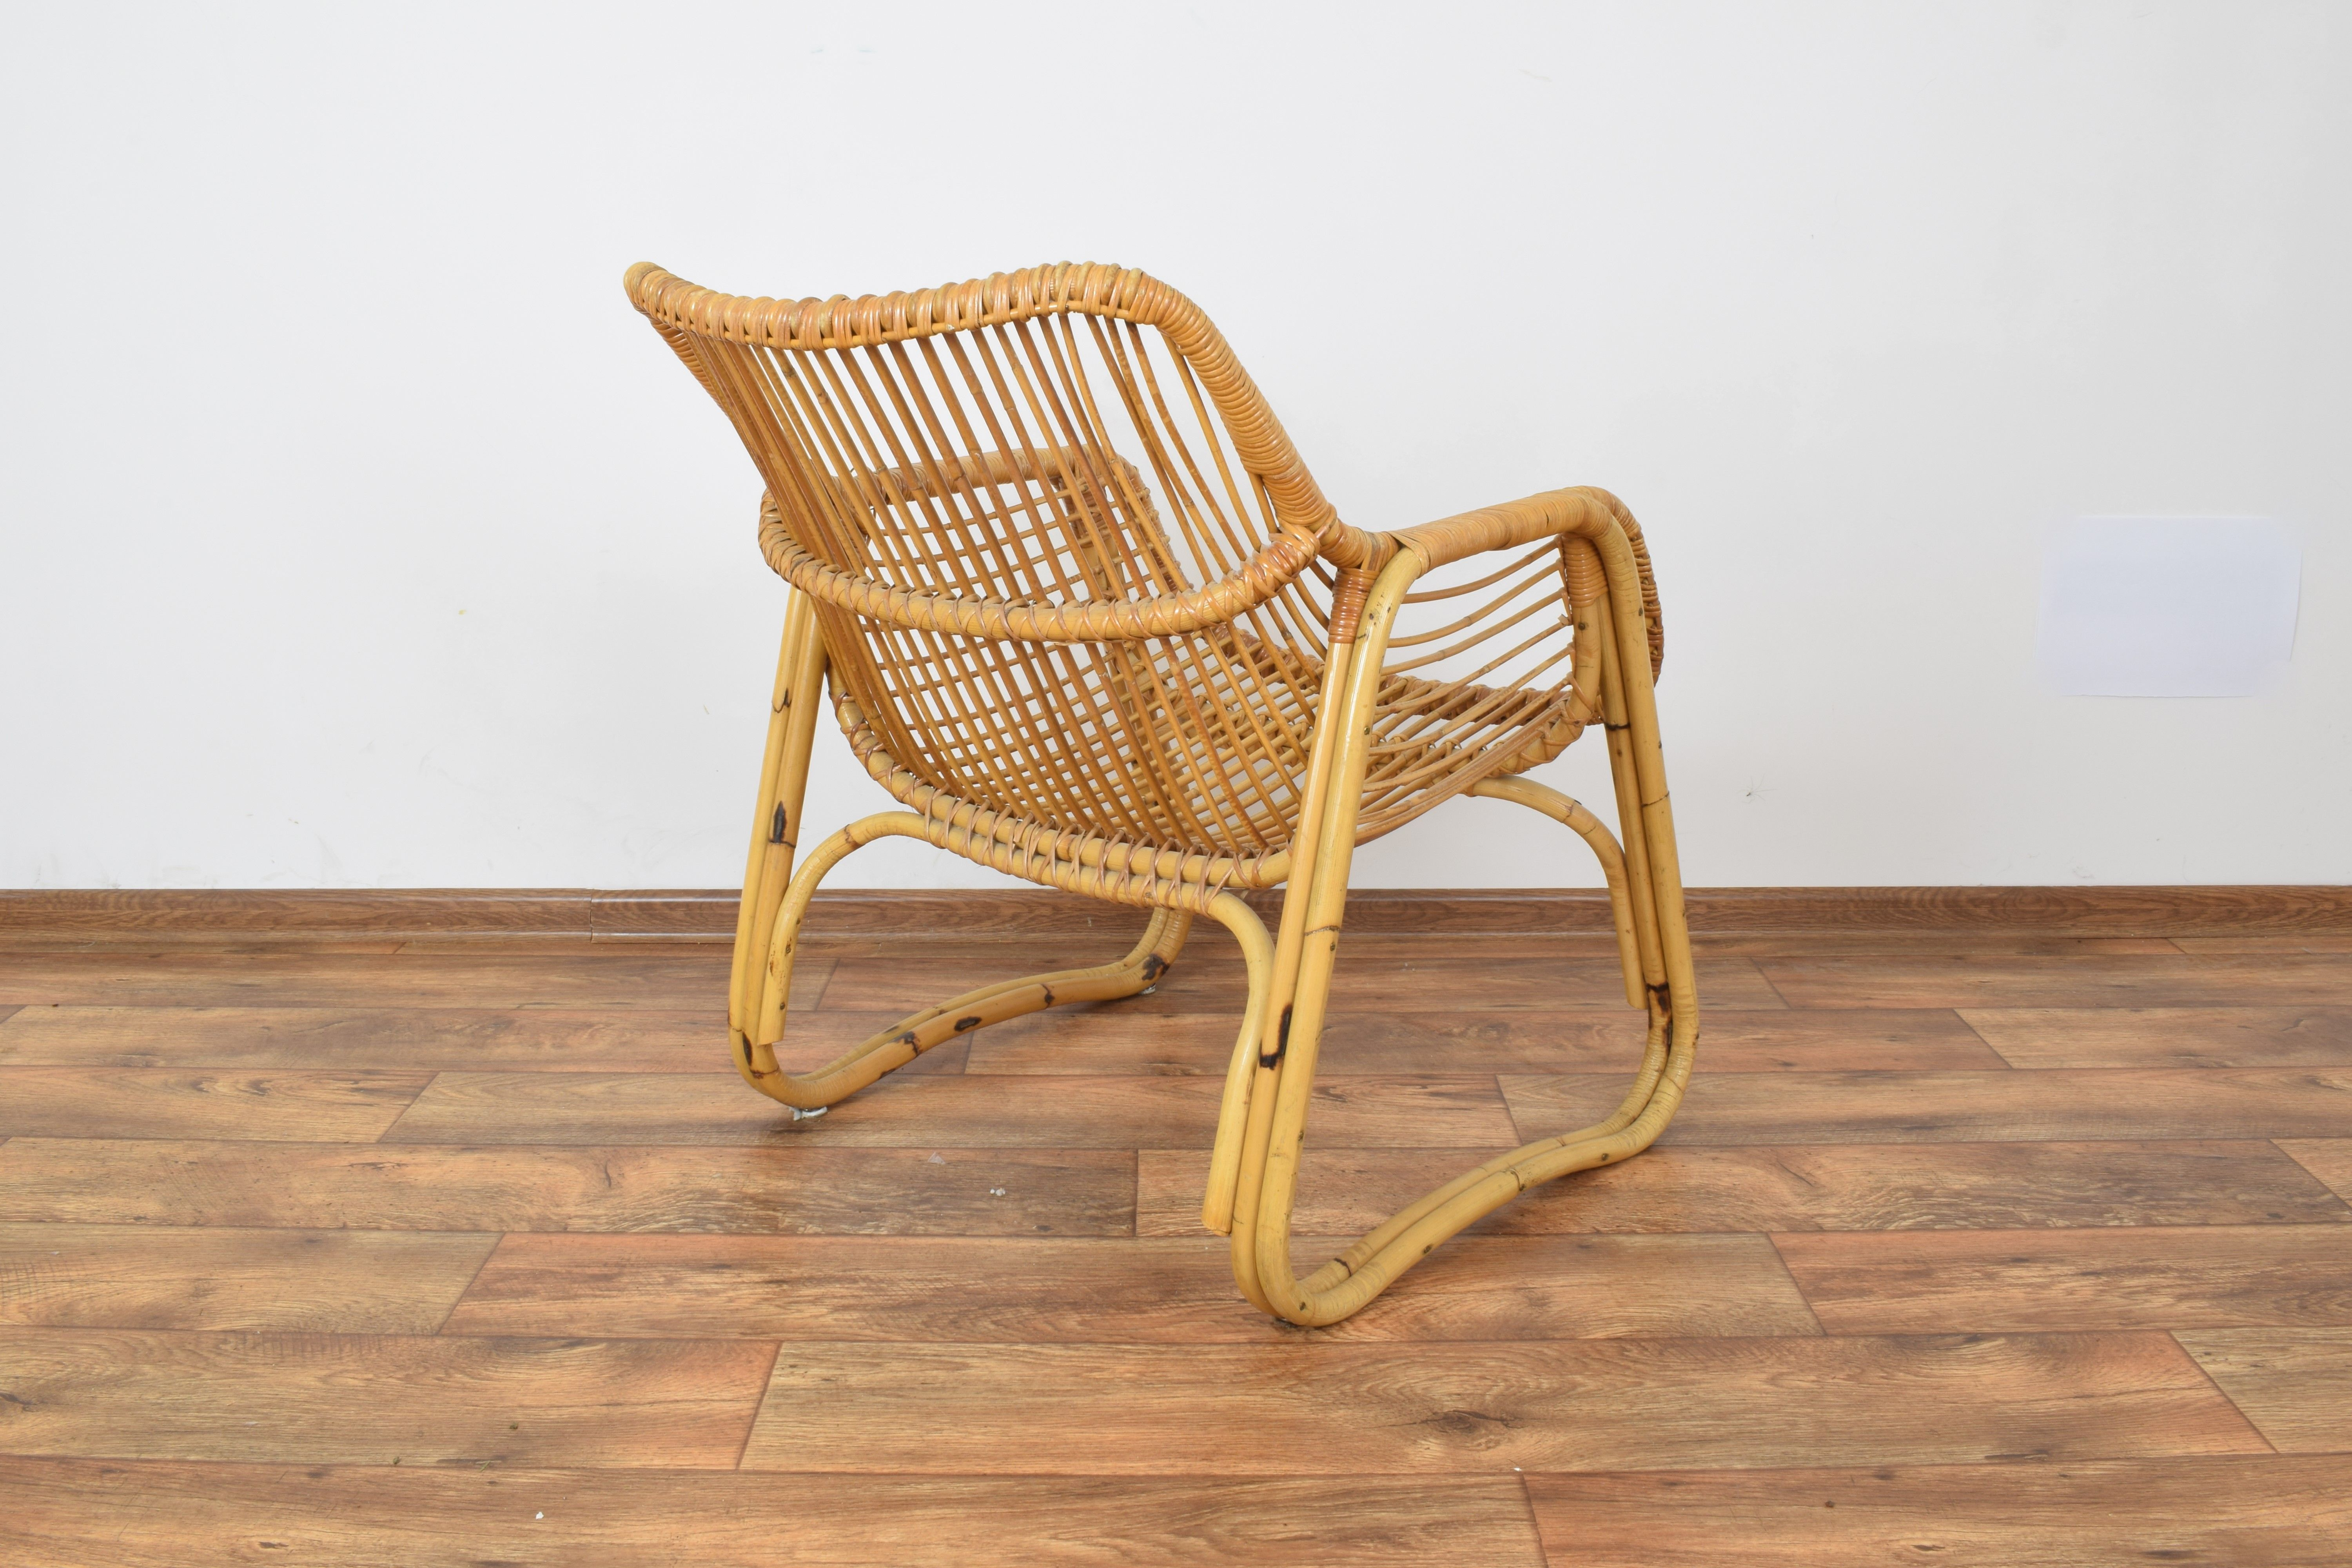 Vintage German armchair in rattan - Design Market